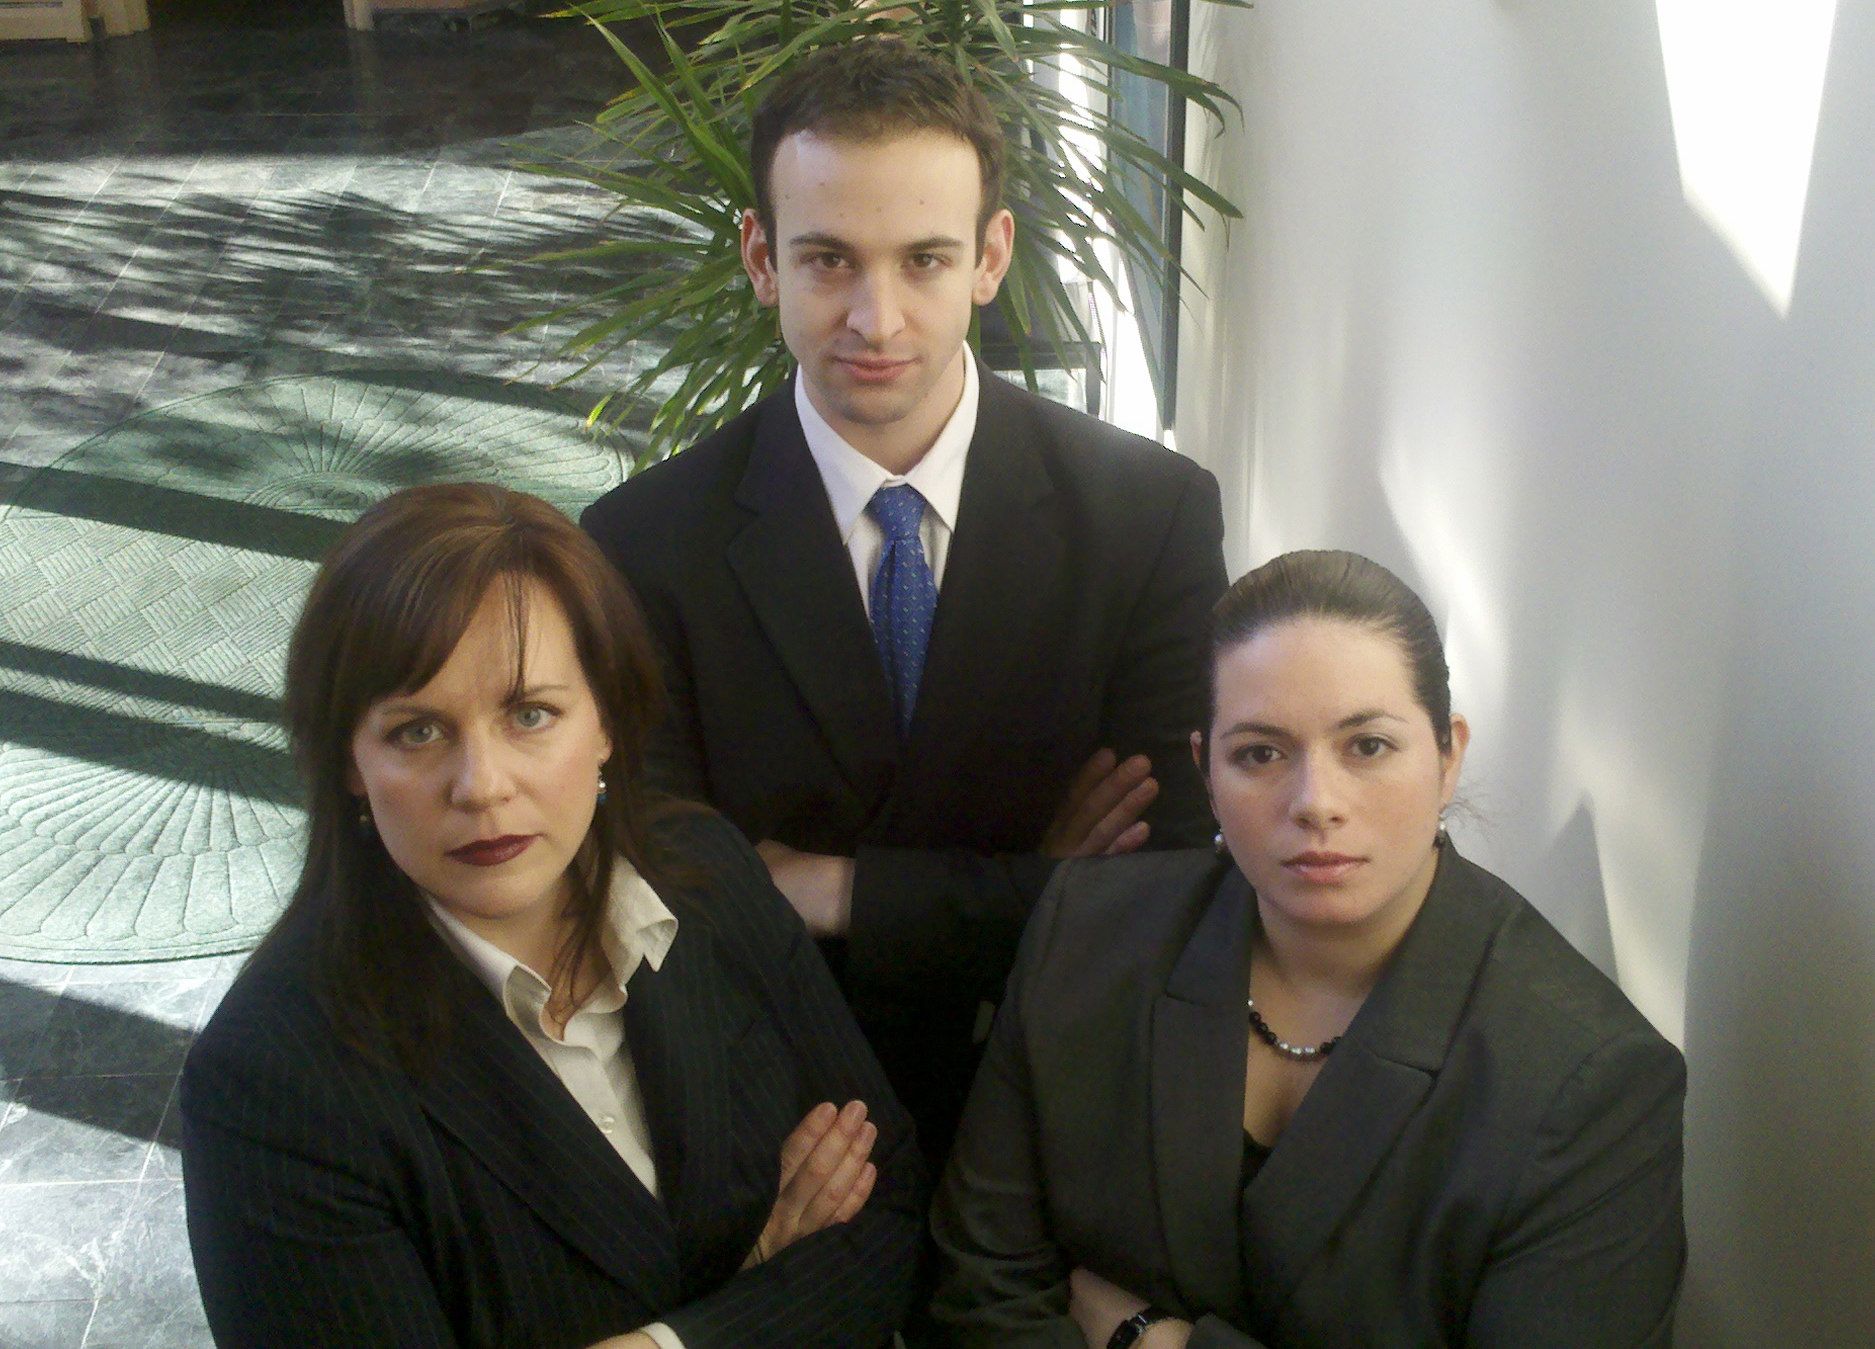 Cool image about Hartford Car Accident Lawyer - it is cool